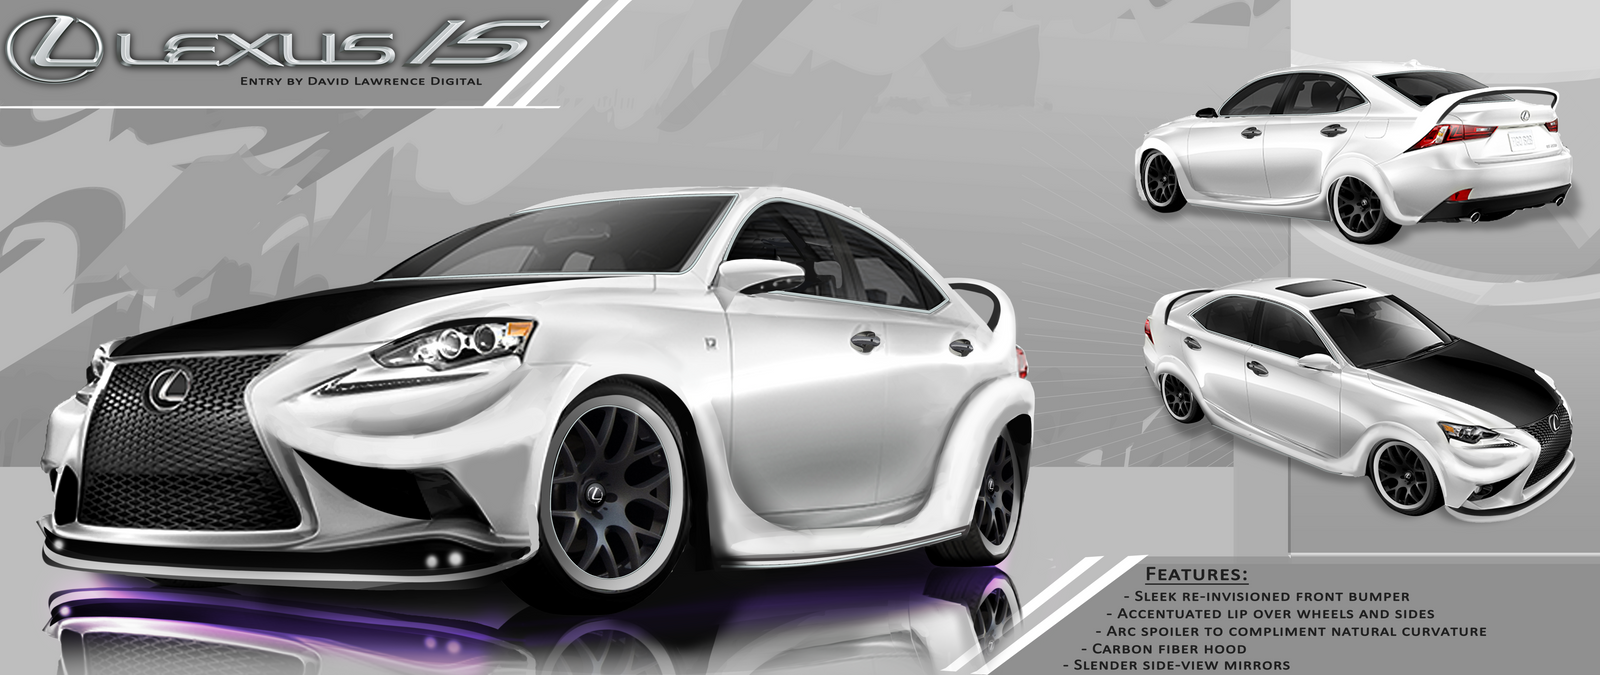 Lexus IS contest by DLDigital